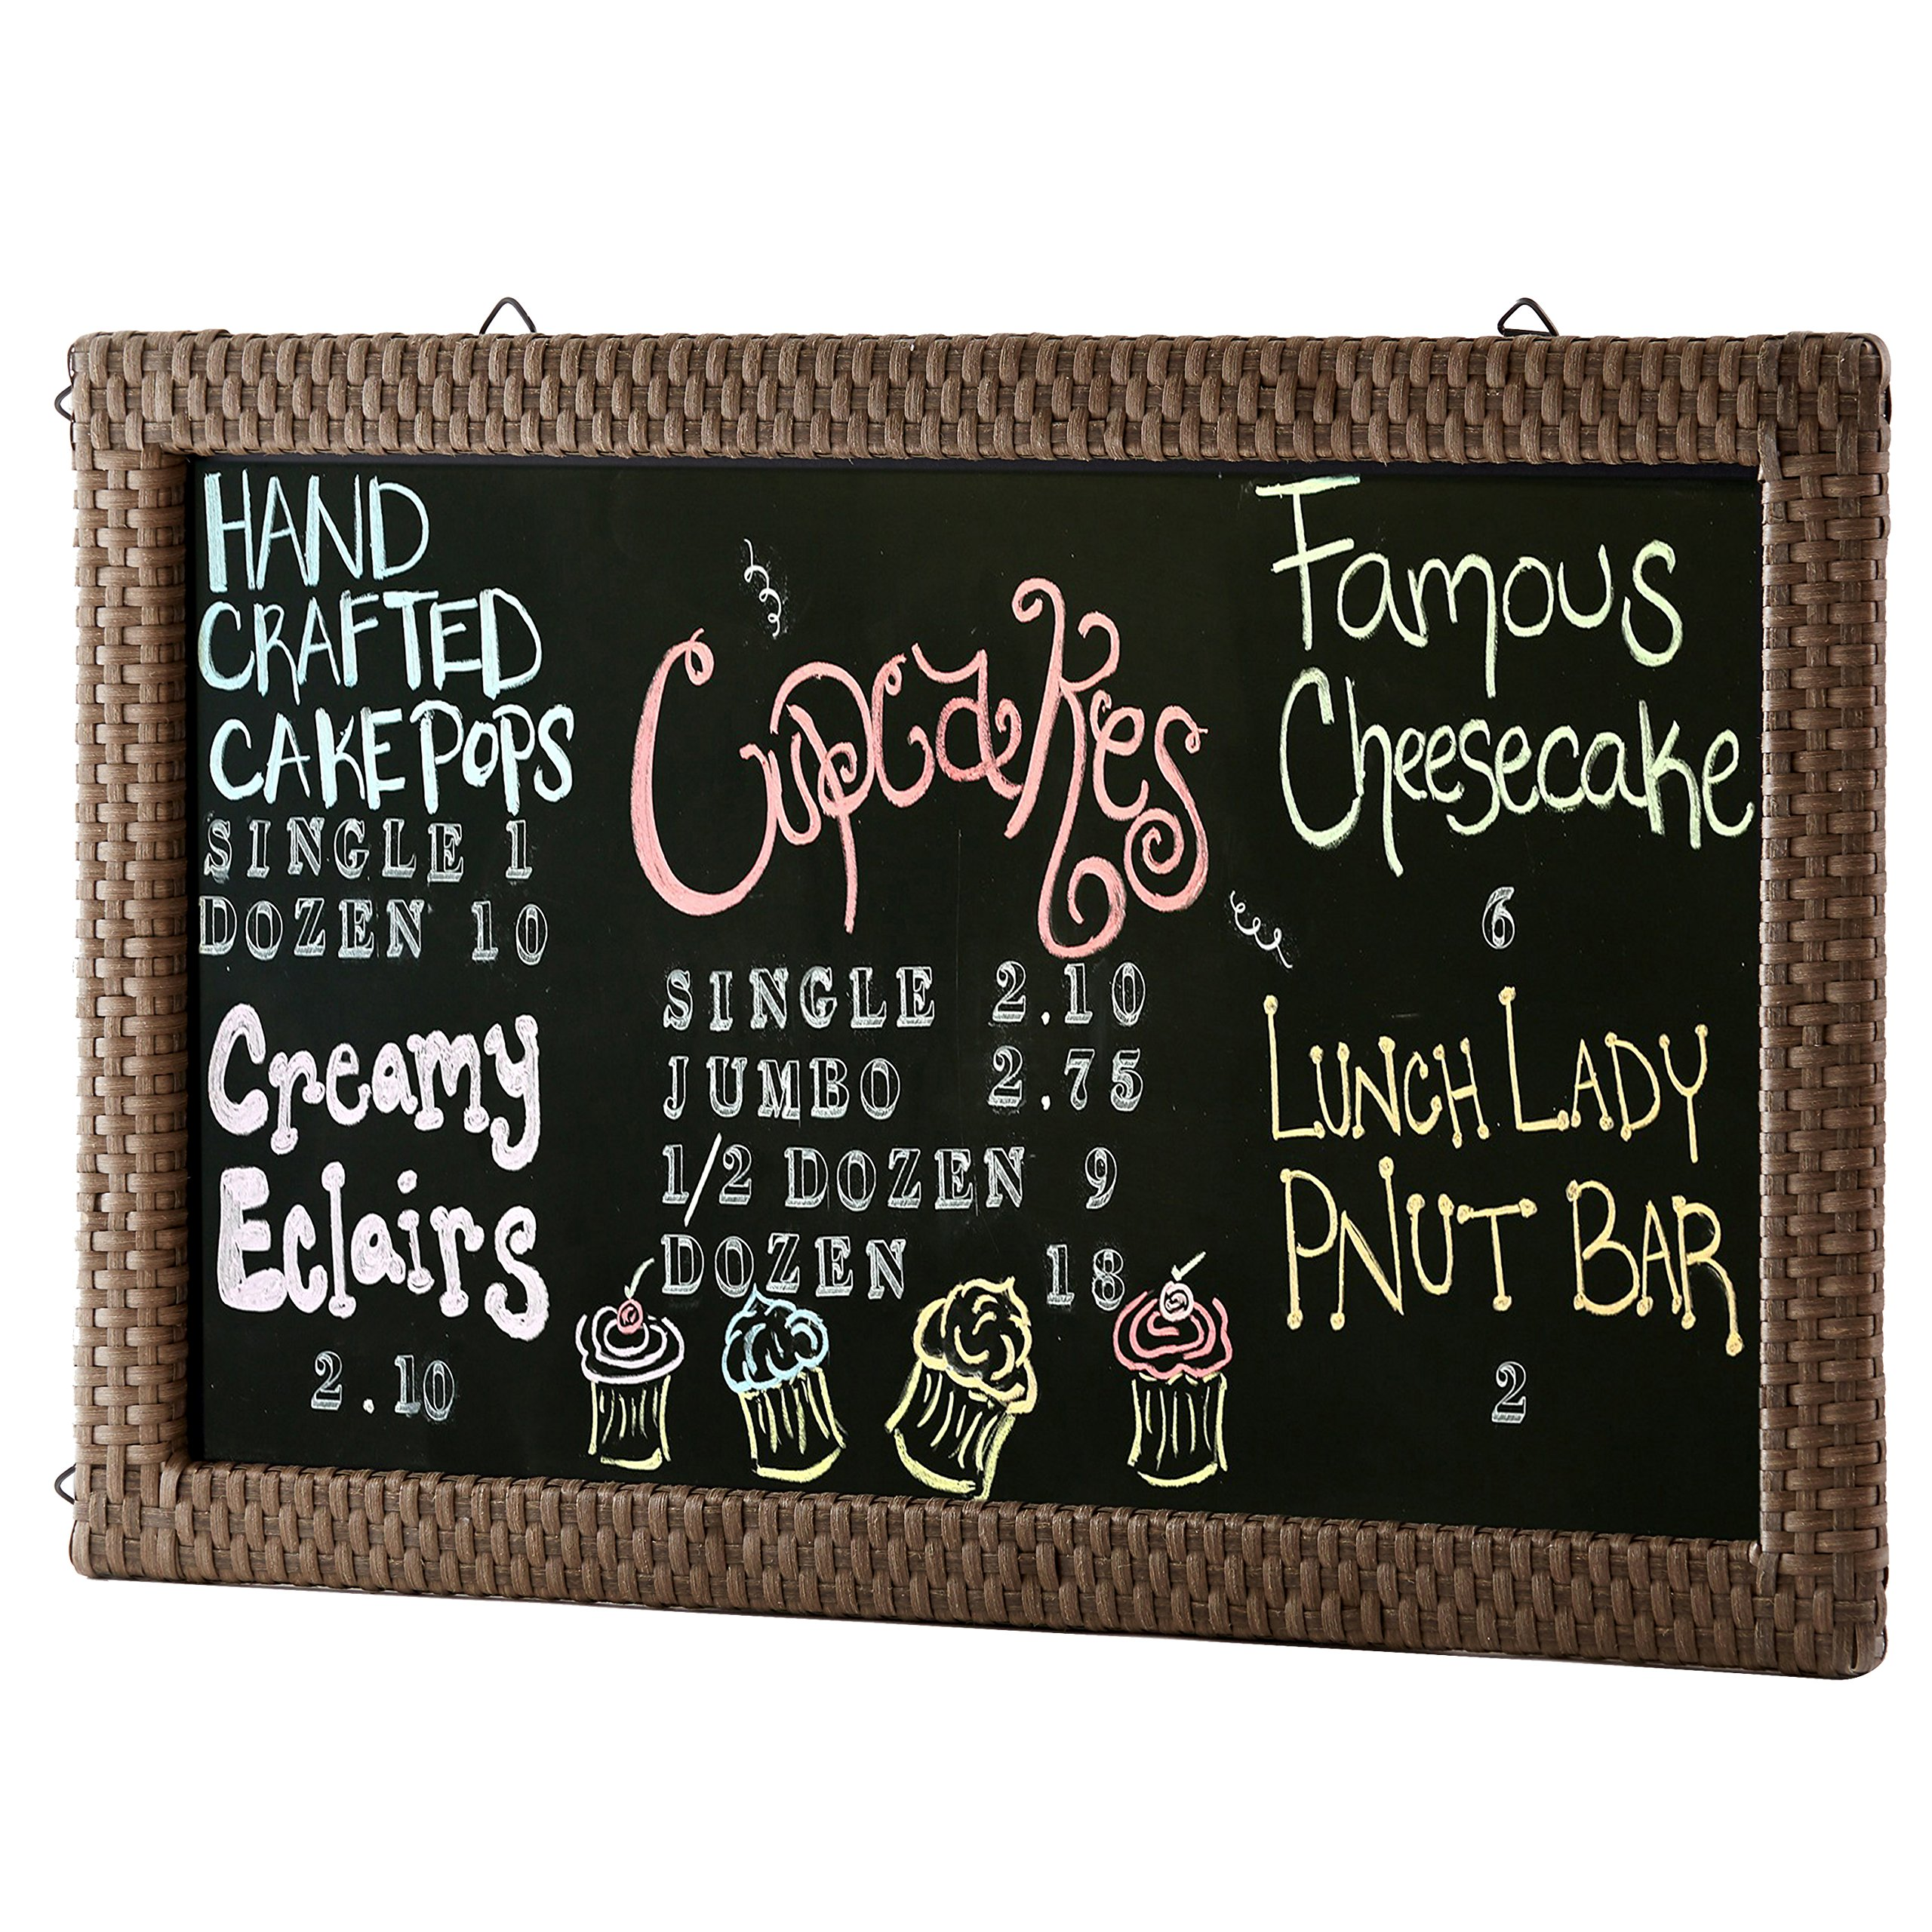 Wood Erasable Chalkboard Sign with Brown Woven Rattan Border Frame, Cafe & Restaurant Menu Board